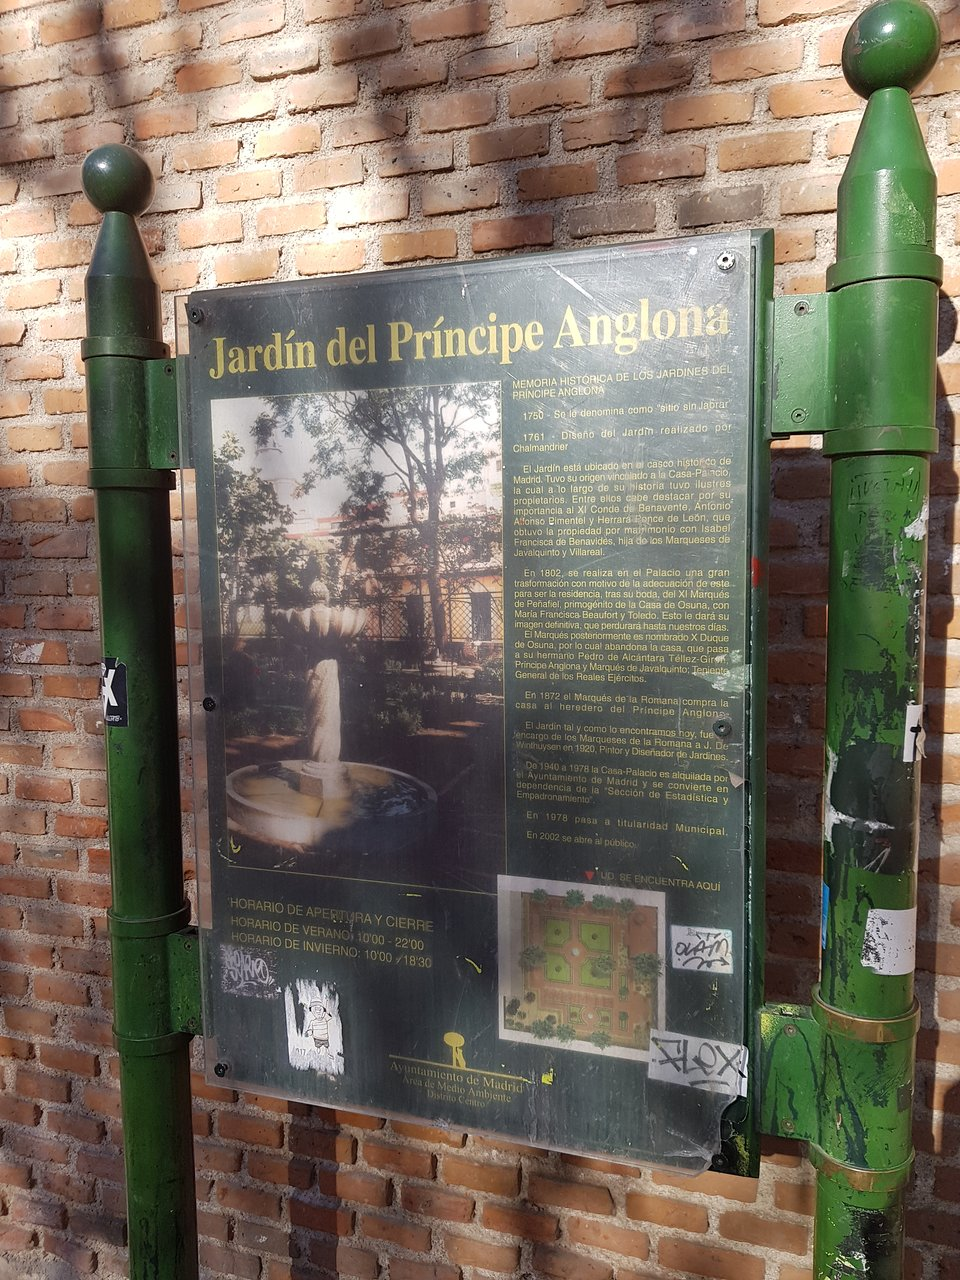 Table De Jardin 8 Places Charmant Jardin Del Principe De Anglona Madrid 2019 All You Need Of 39 Charmant Table De Jardin 8 Places